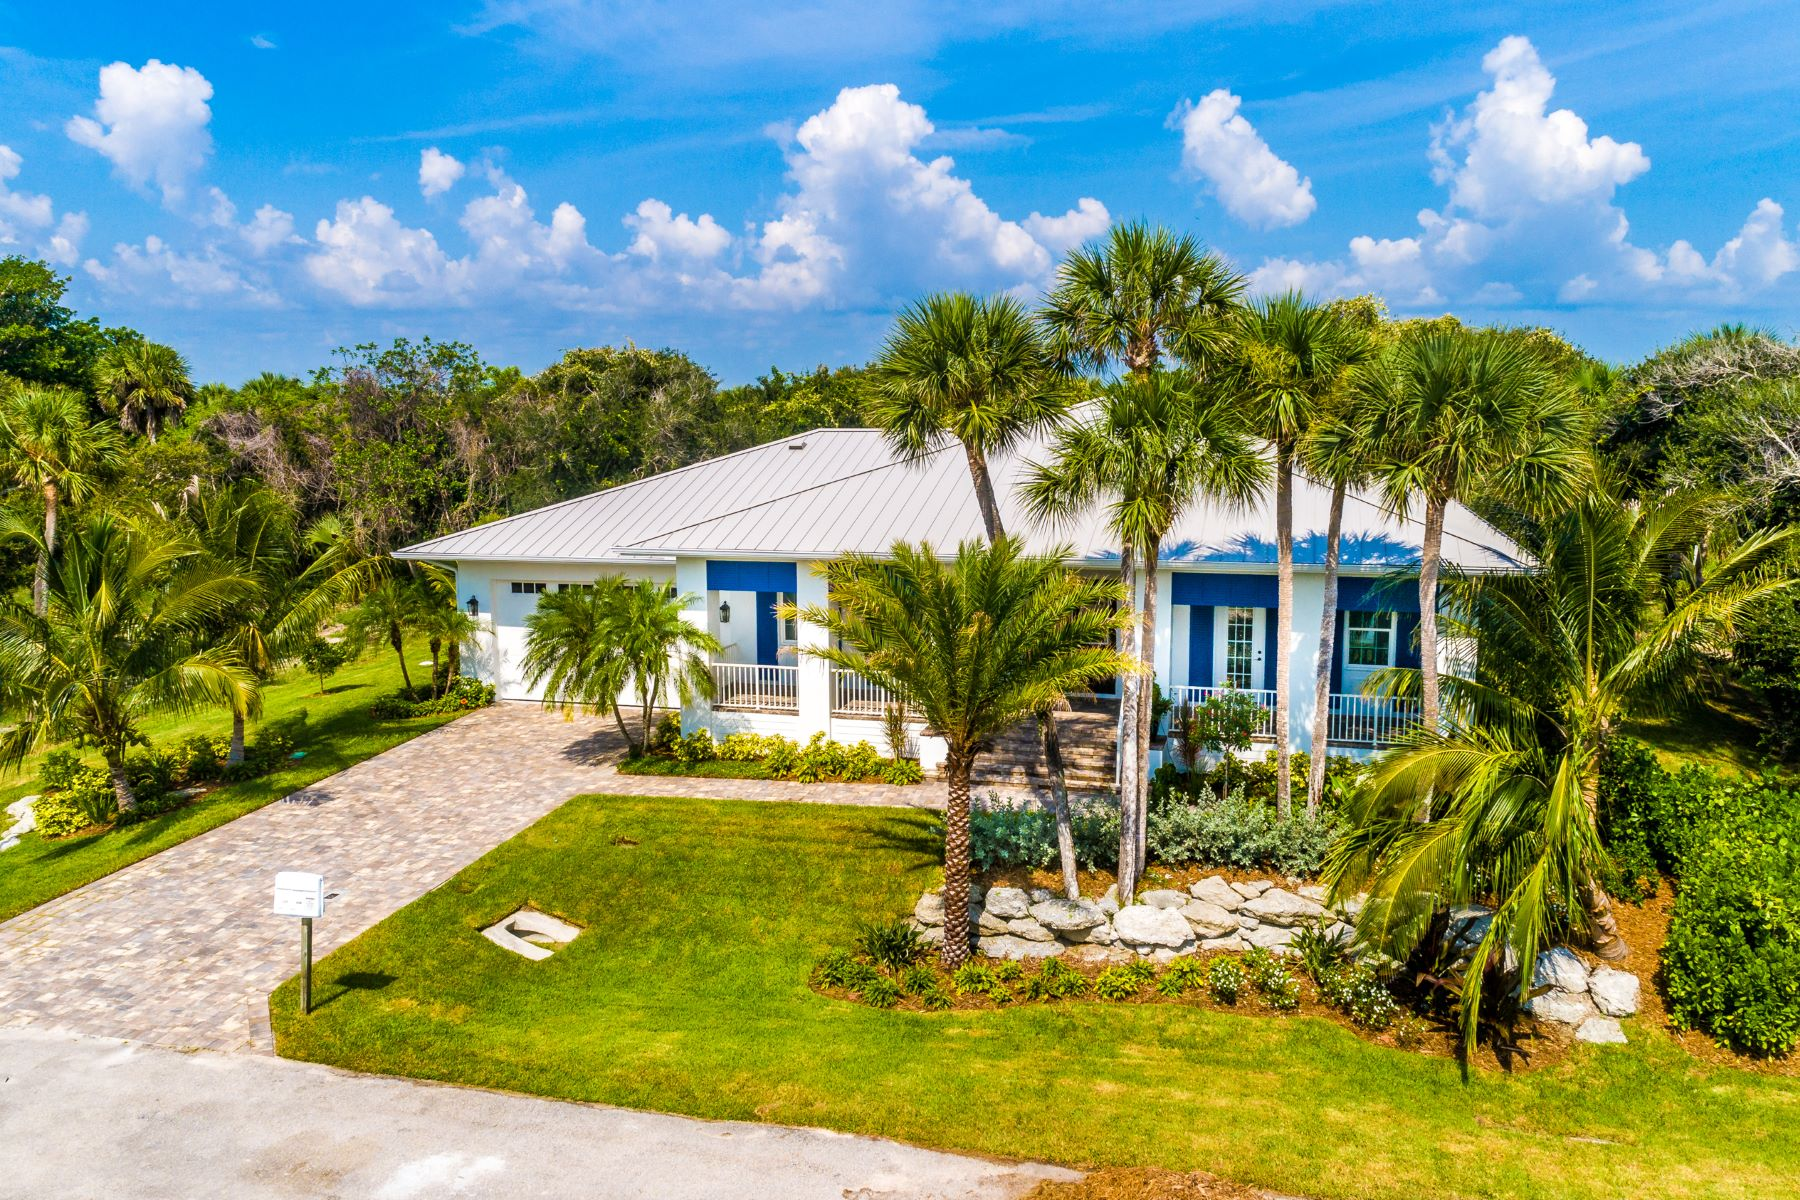 Single Family Homes для того Продажа на West Indies Style Home 11775 Brown Pelican Way Vero Beach, Флорида 32963 Соединенные Штаты